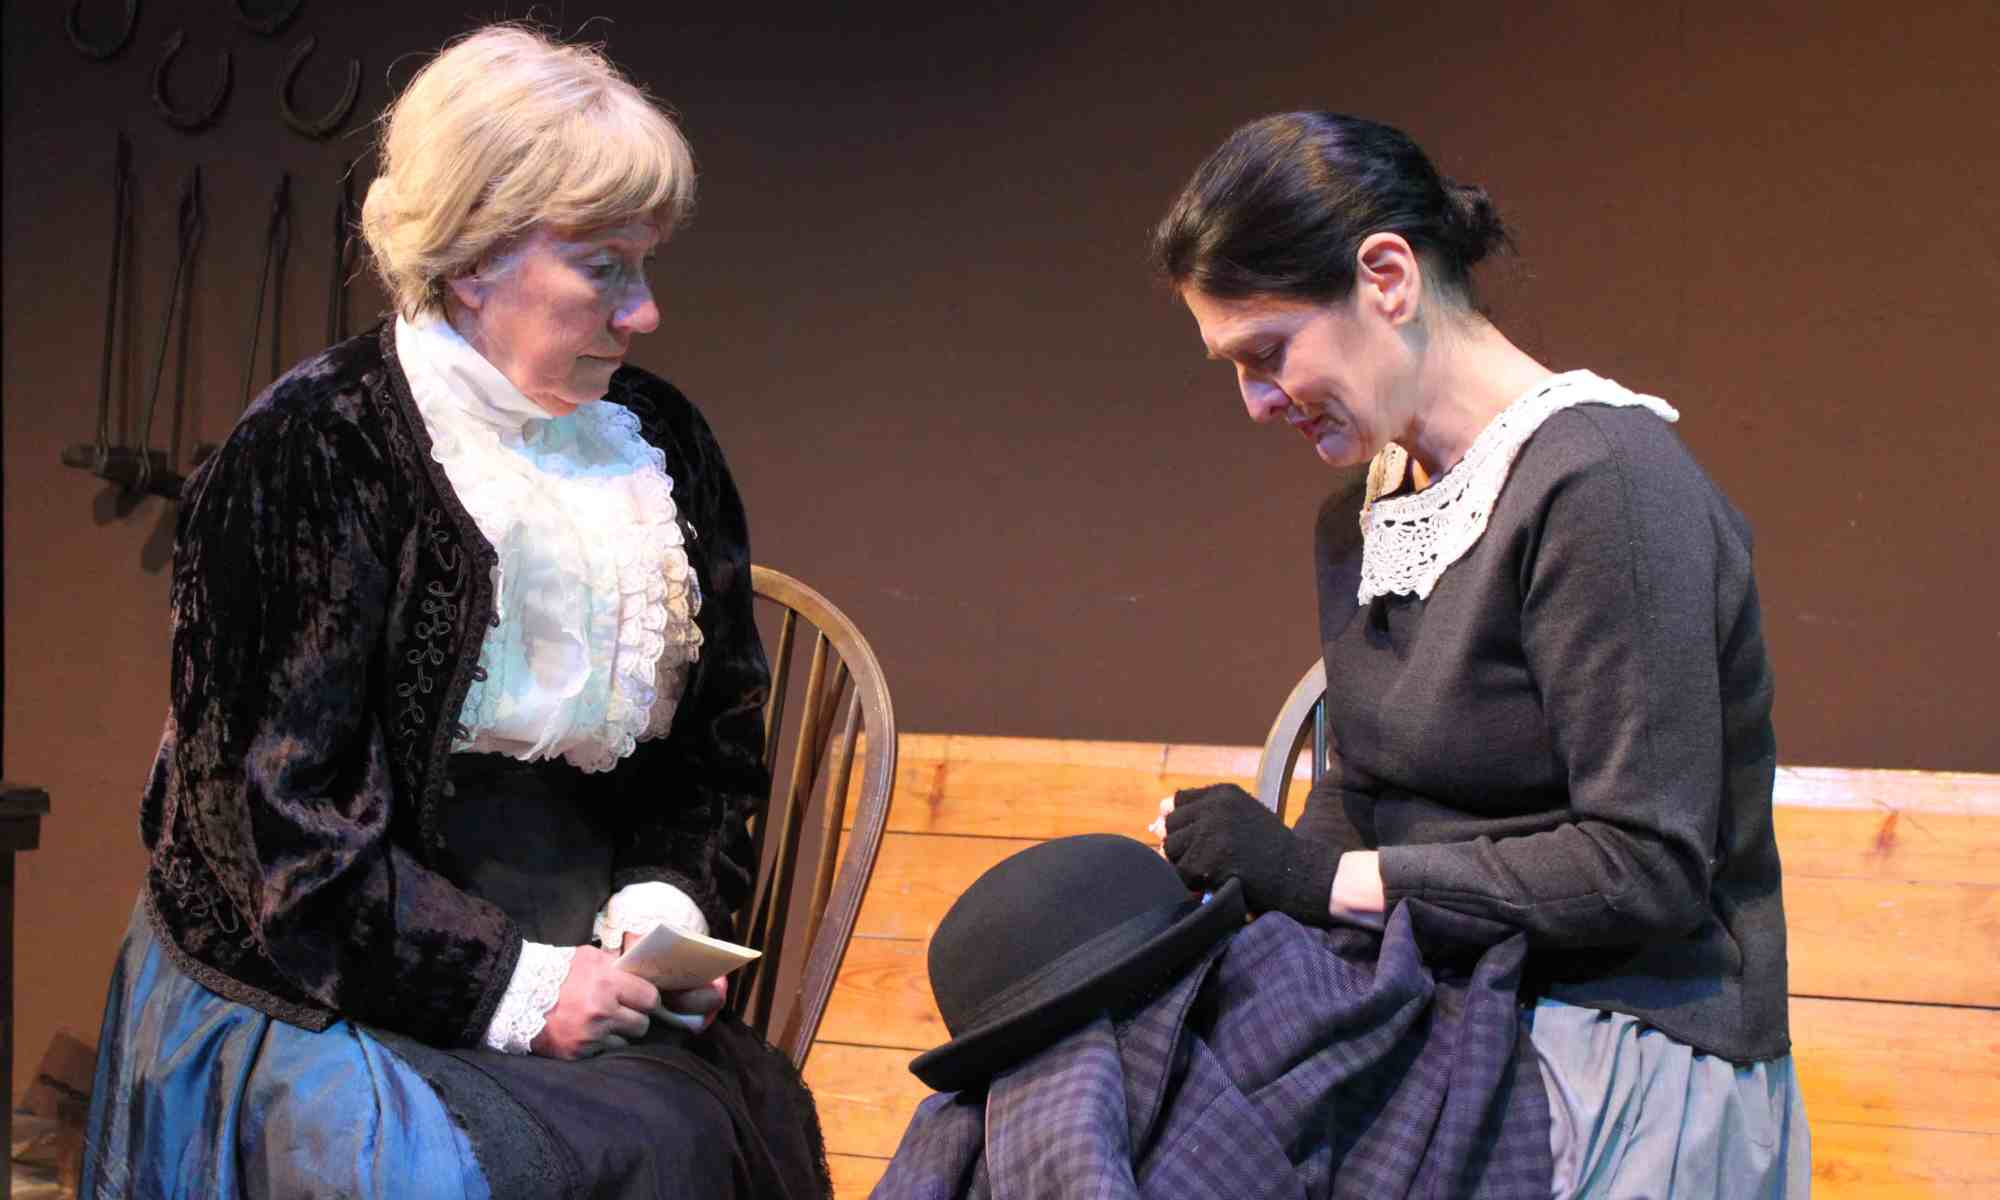 Photograph of Mrs Macey played by Marie Cooper and Dorcas Lane played by Lyn Smith in Candleford at Sewell Barn Theatre